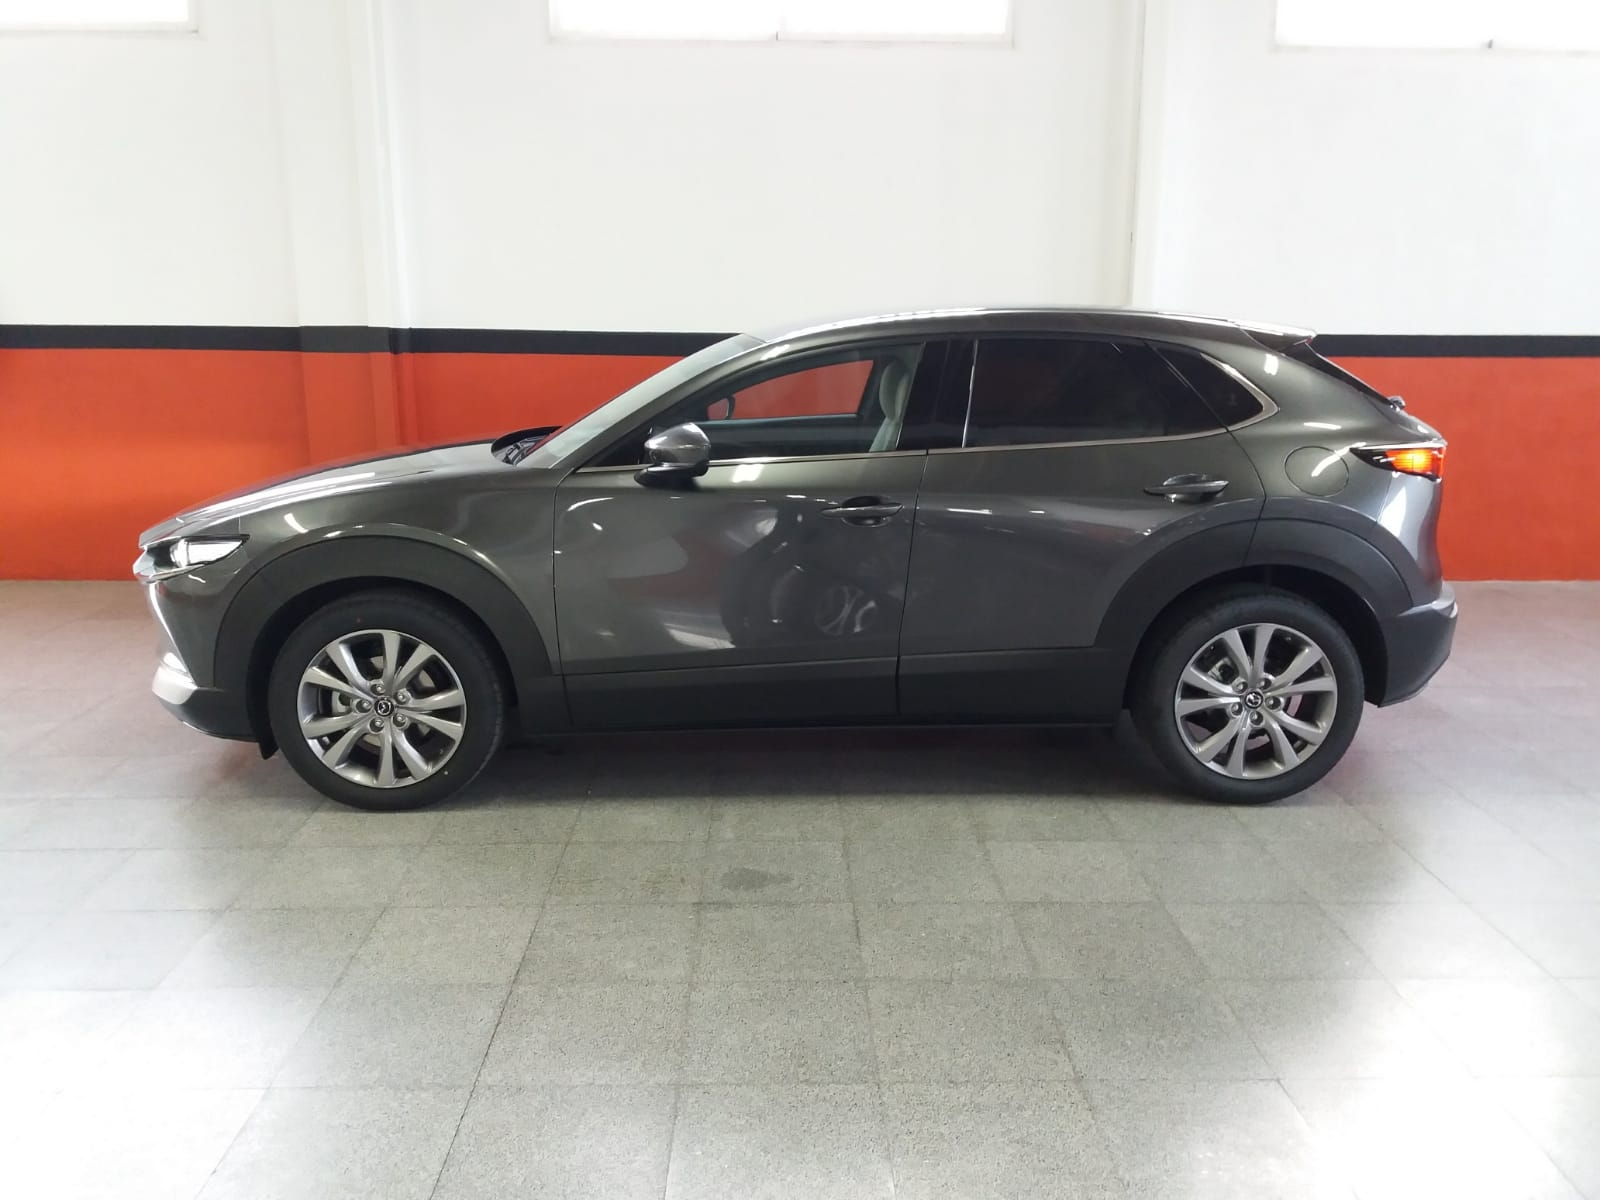 MAZDA CX-30 2.0 180 CV X ZENITH WHITE SAFETY